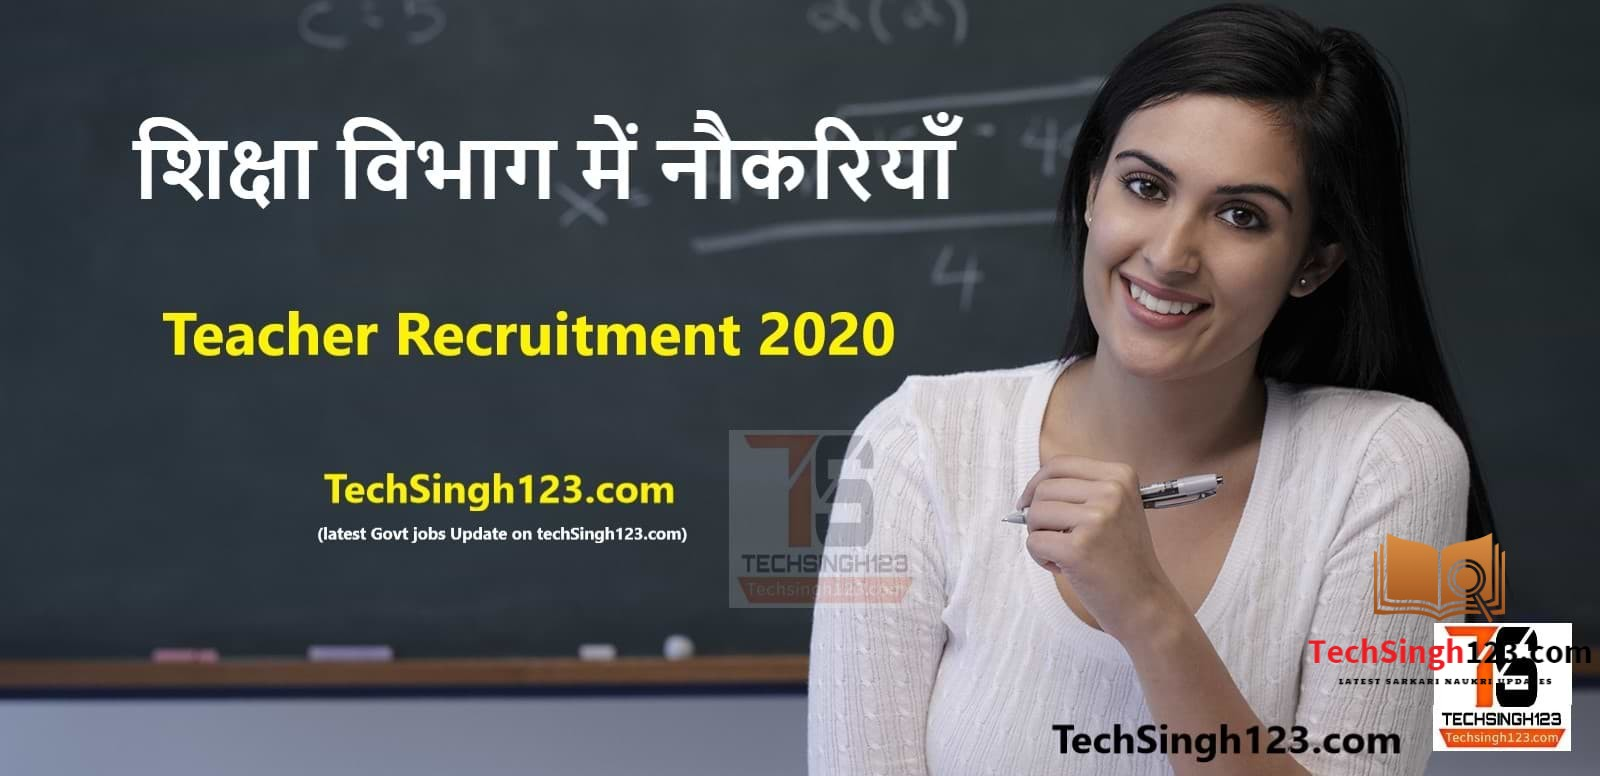 IGU Meerpur Recruitment 2020  Indira Gandhi University Recruitment 2020-2021